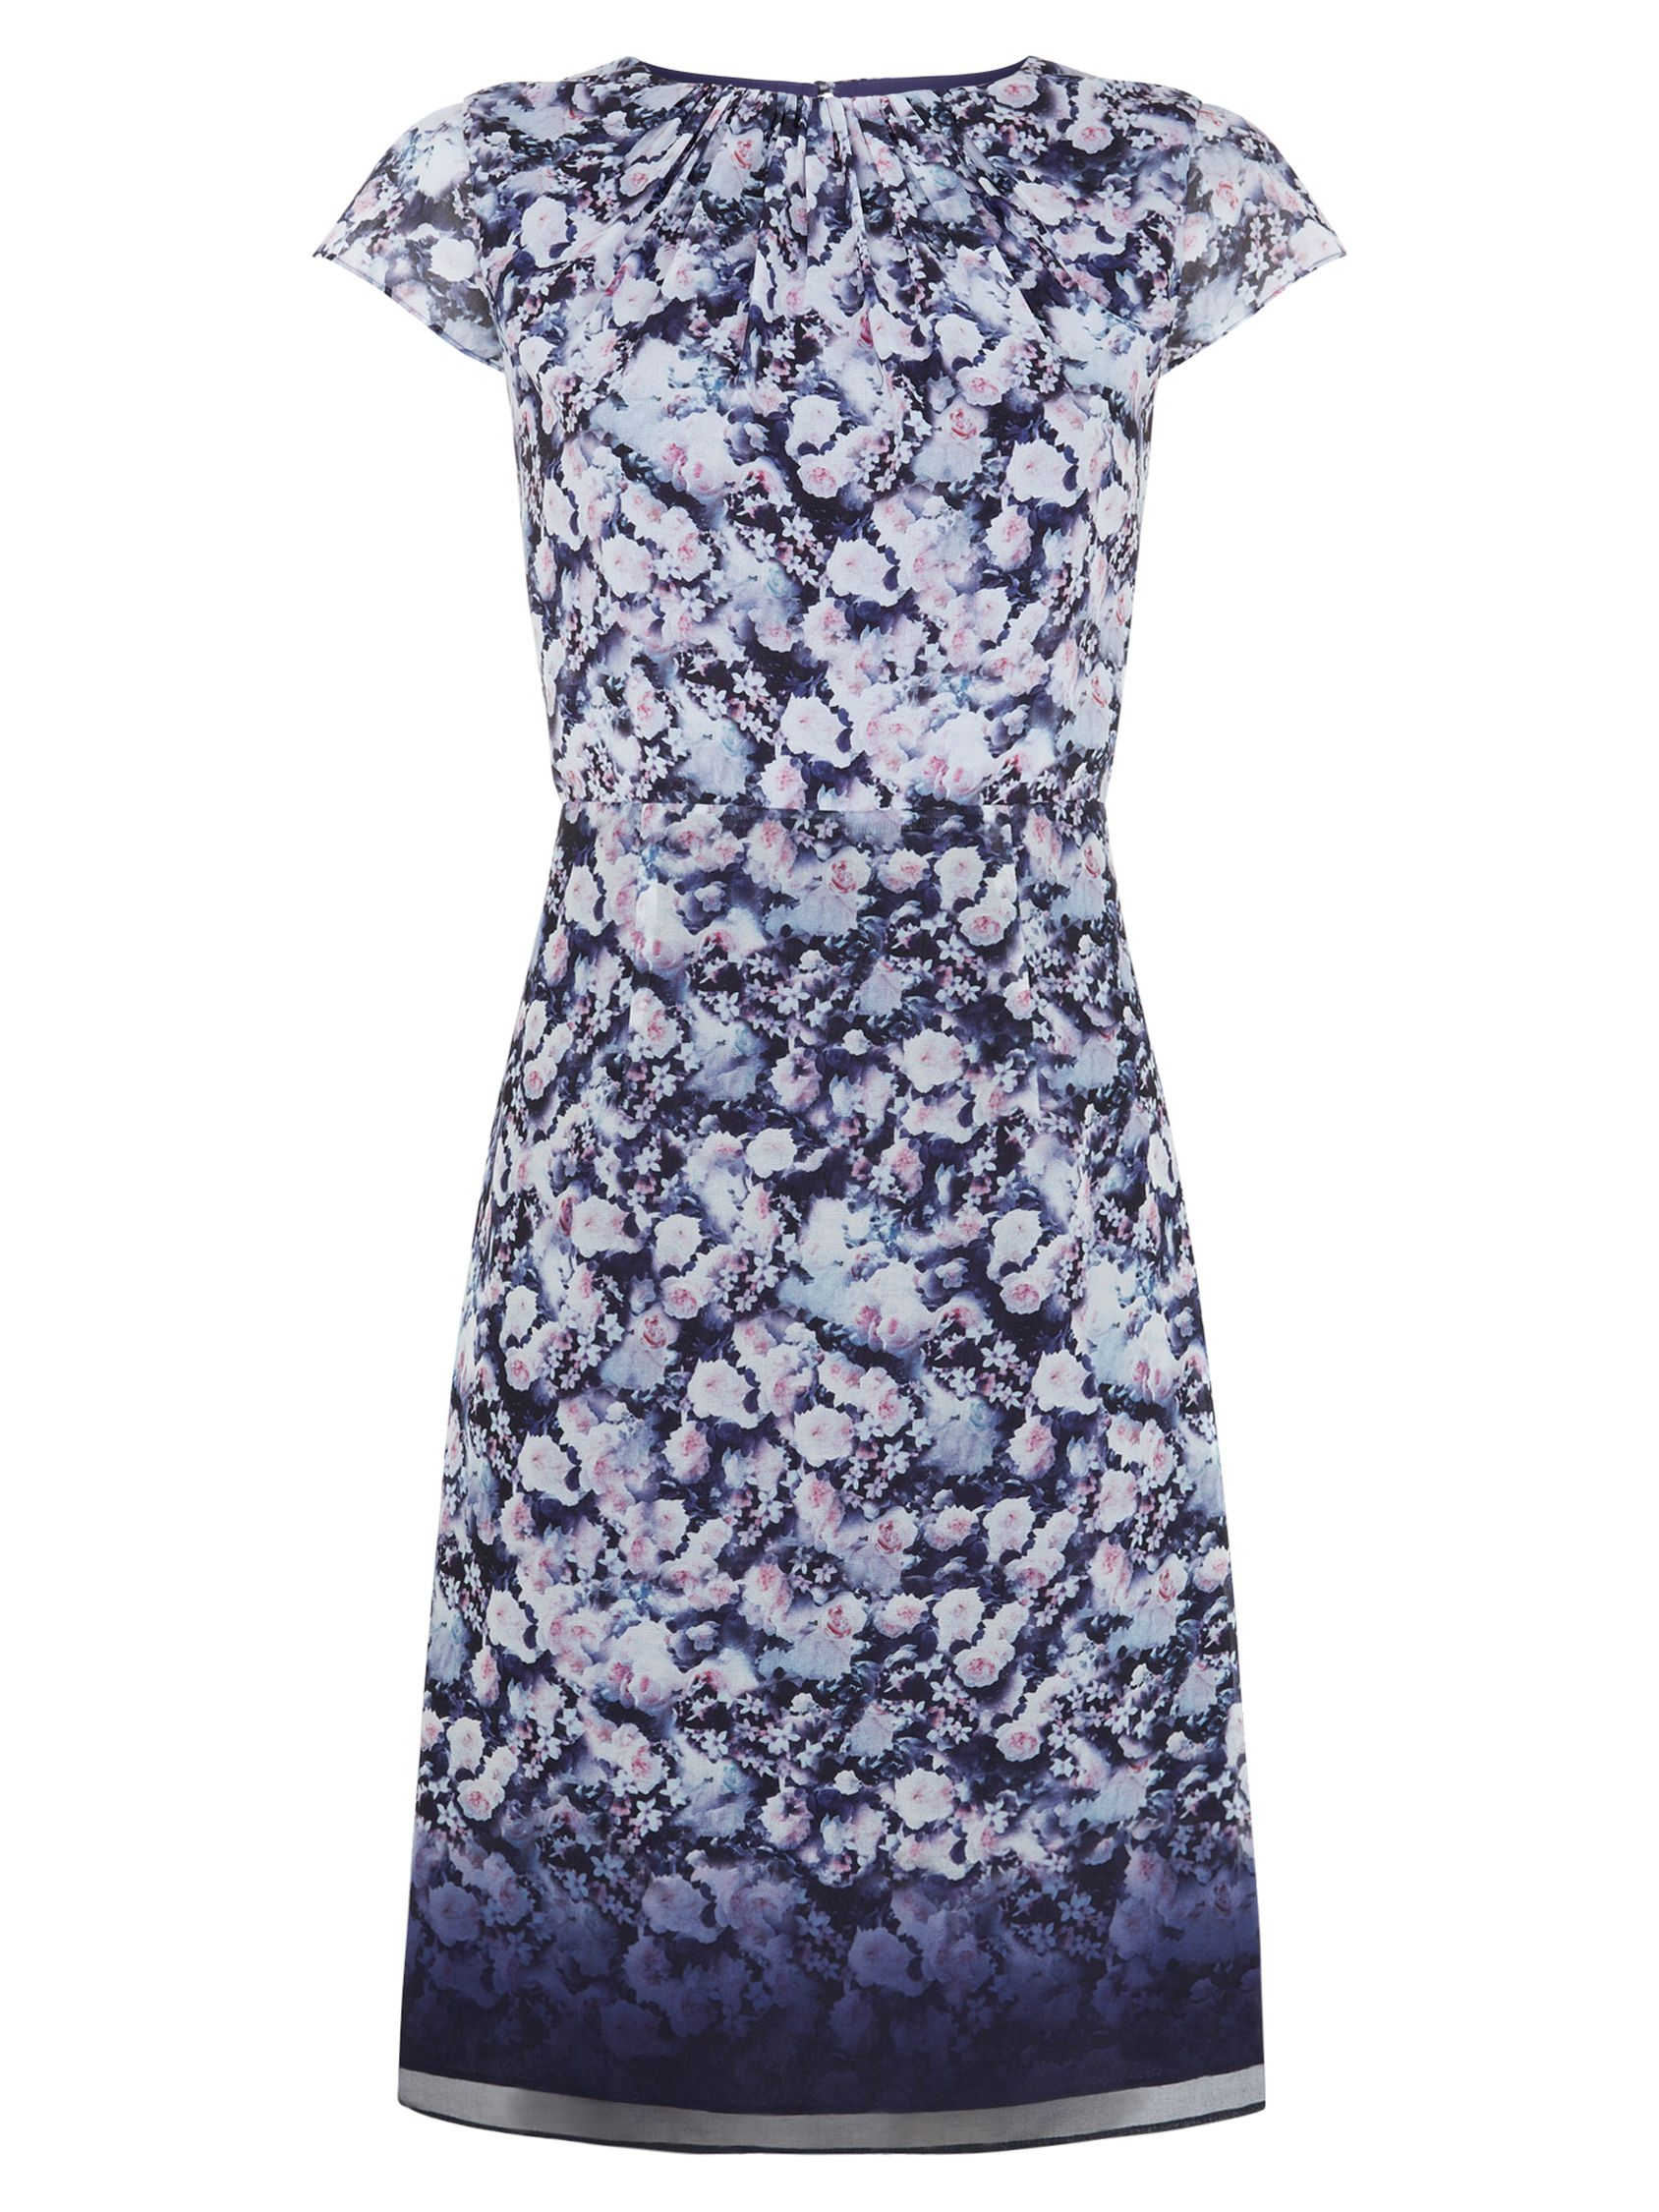 kaliko ombre floral dress blue, kaliko, ombre, floral, dress, blue, 14|16, clearance, womenswear offers, womens dresses offers, special offers, 20% off selected kaliko, women, plus size, womens dresses, 1609554